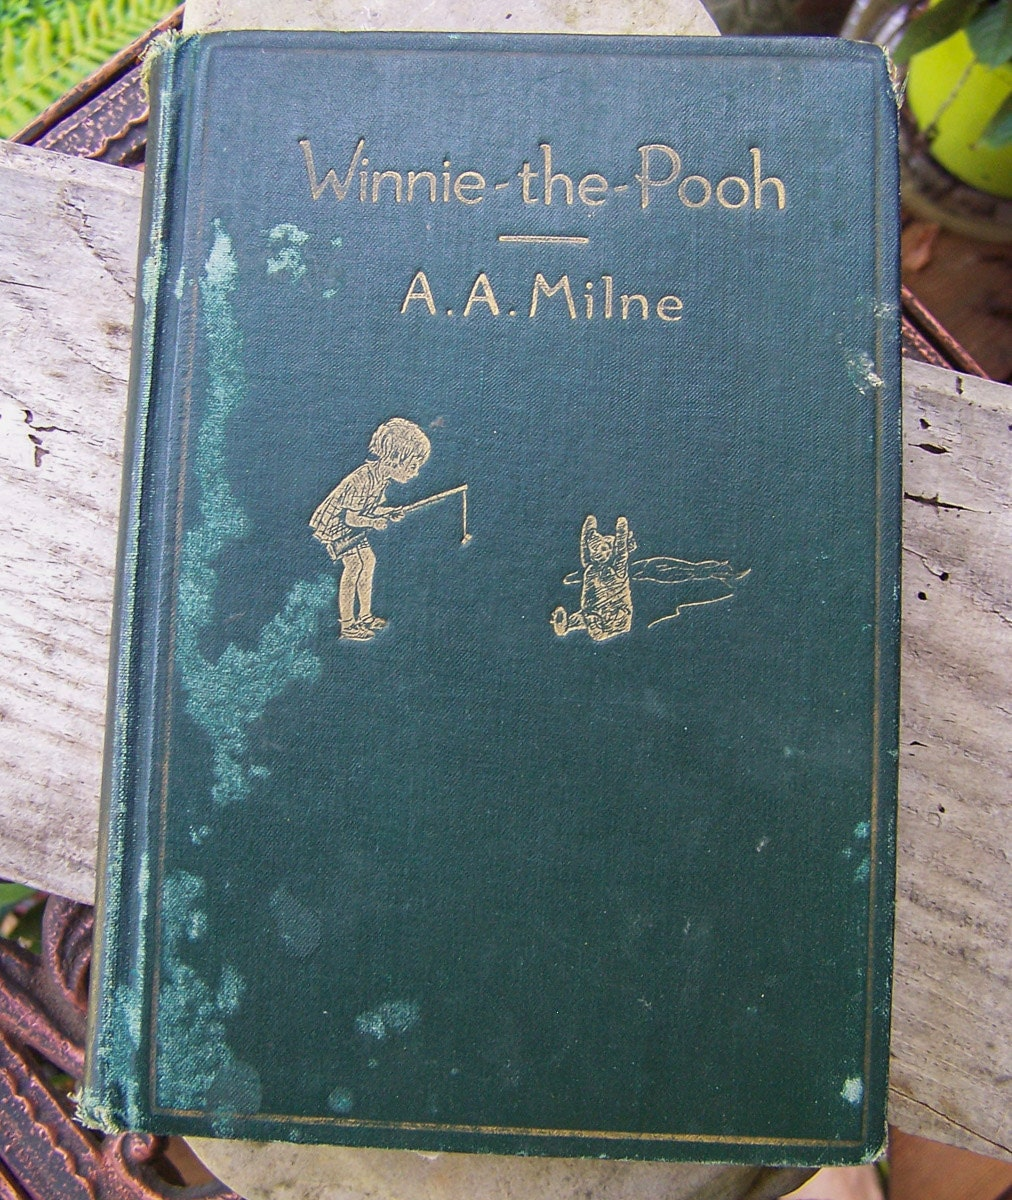 SALE 50% Off Winnie the Pooh First Edition Vintage Book